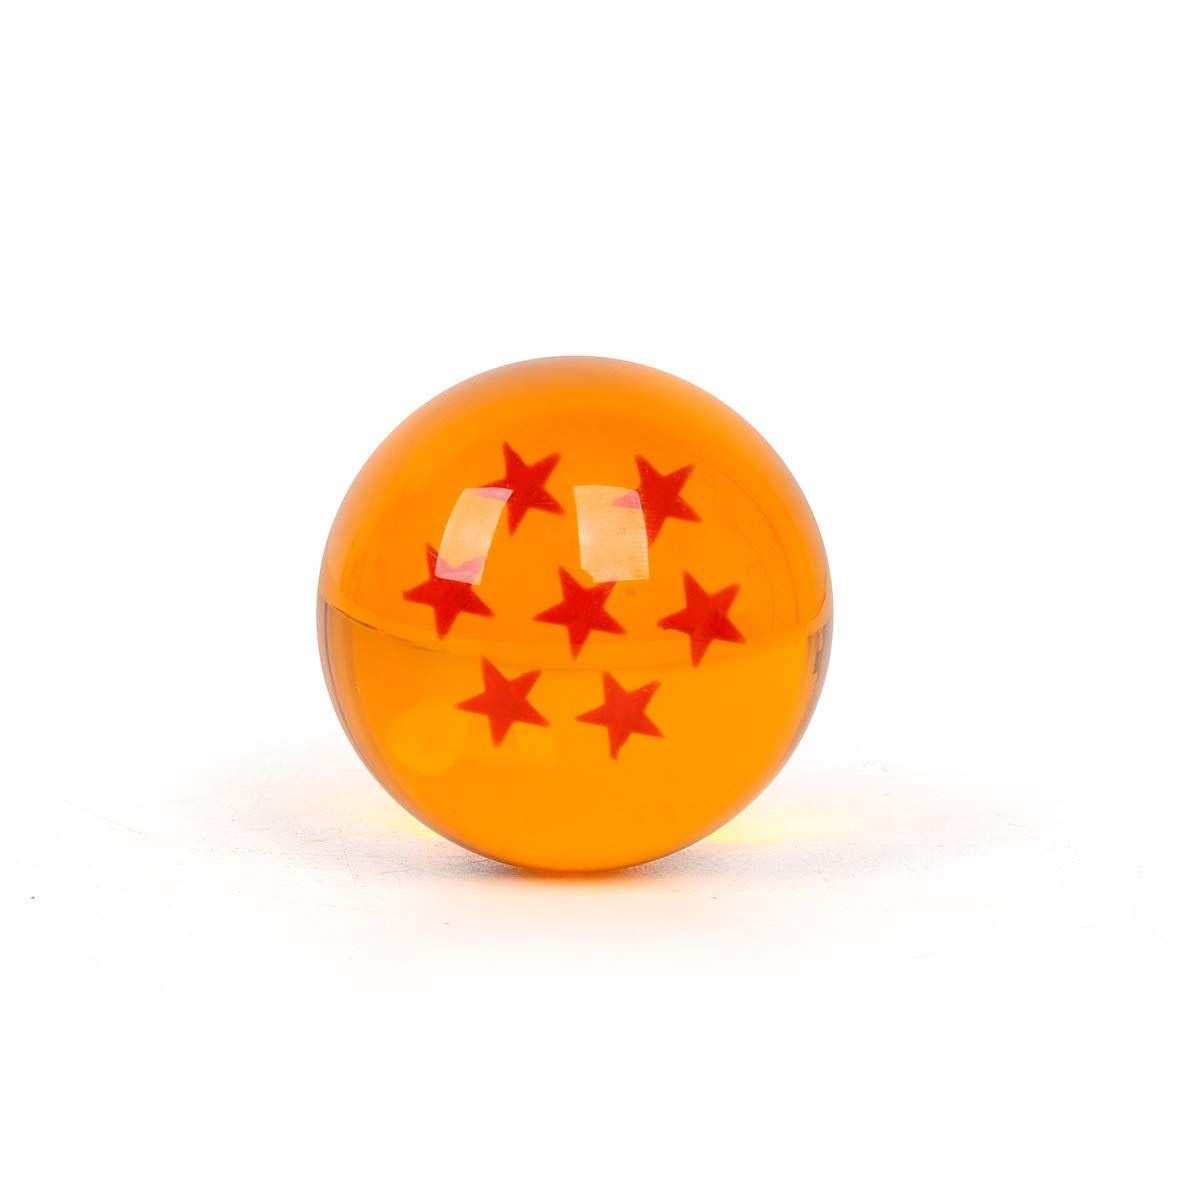 WeizhaonanCos Unisex Acrylic Resin Transparent Stars Balls Glass Ball Dragon Ball Cosplay Props Kids Play Toy Gift Set of 7pcs 43mm/1.7 in in Diameter (Orange) by WeizhaonanCos (Image #7)